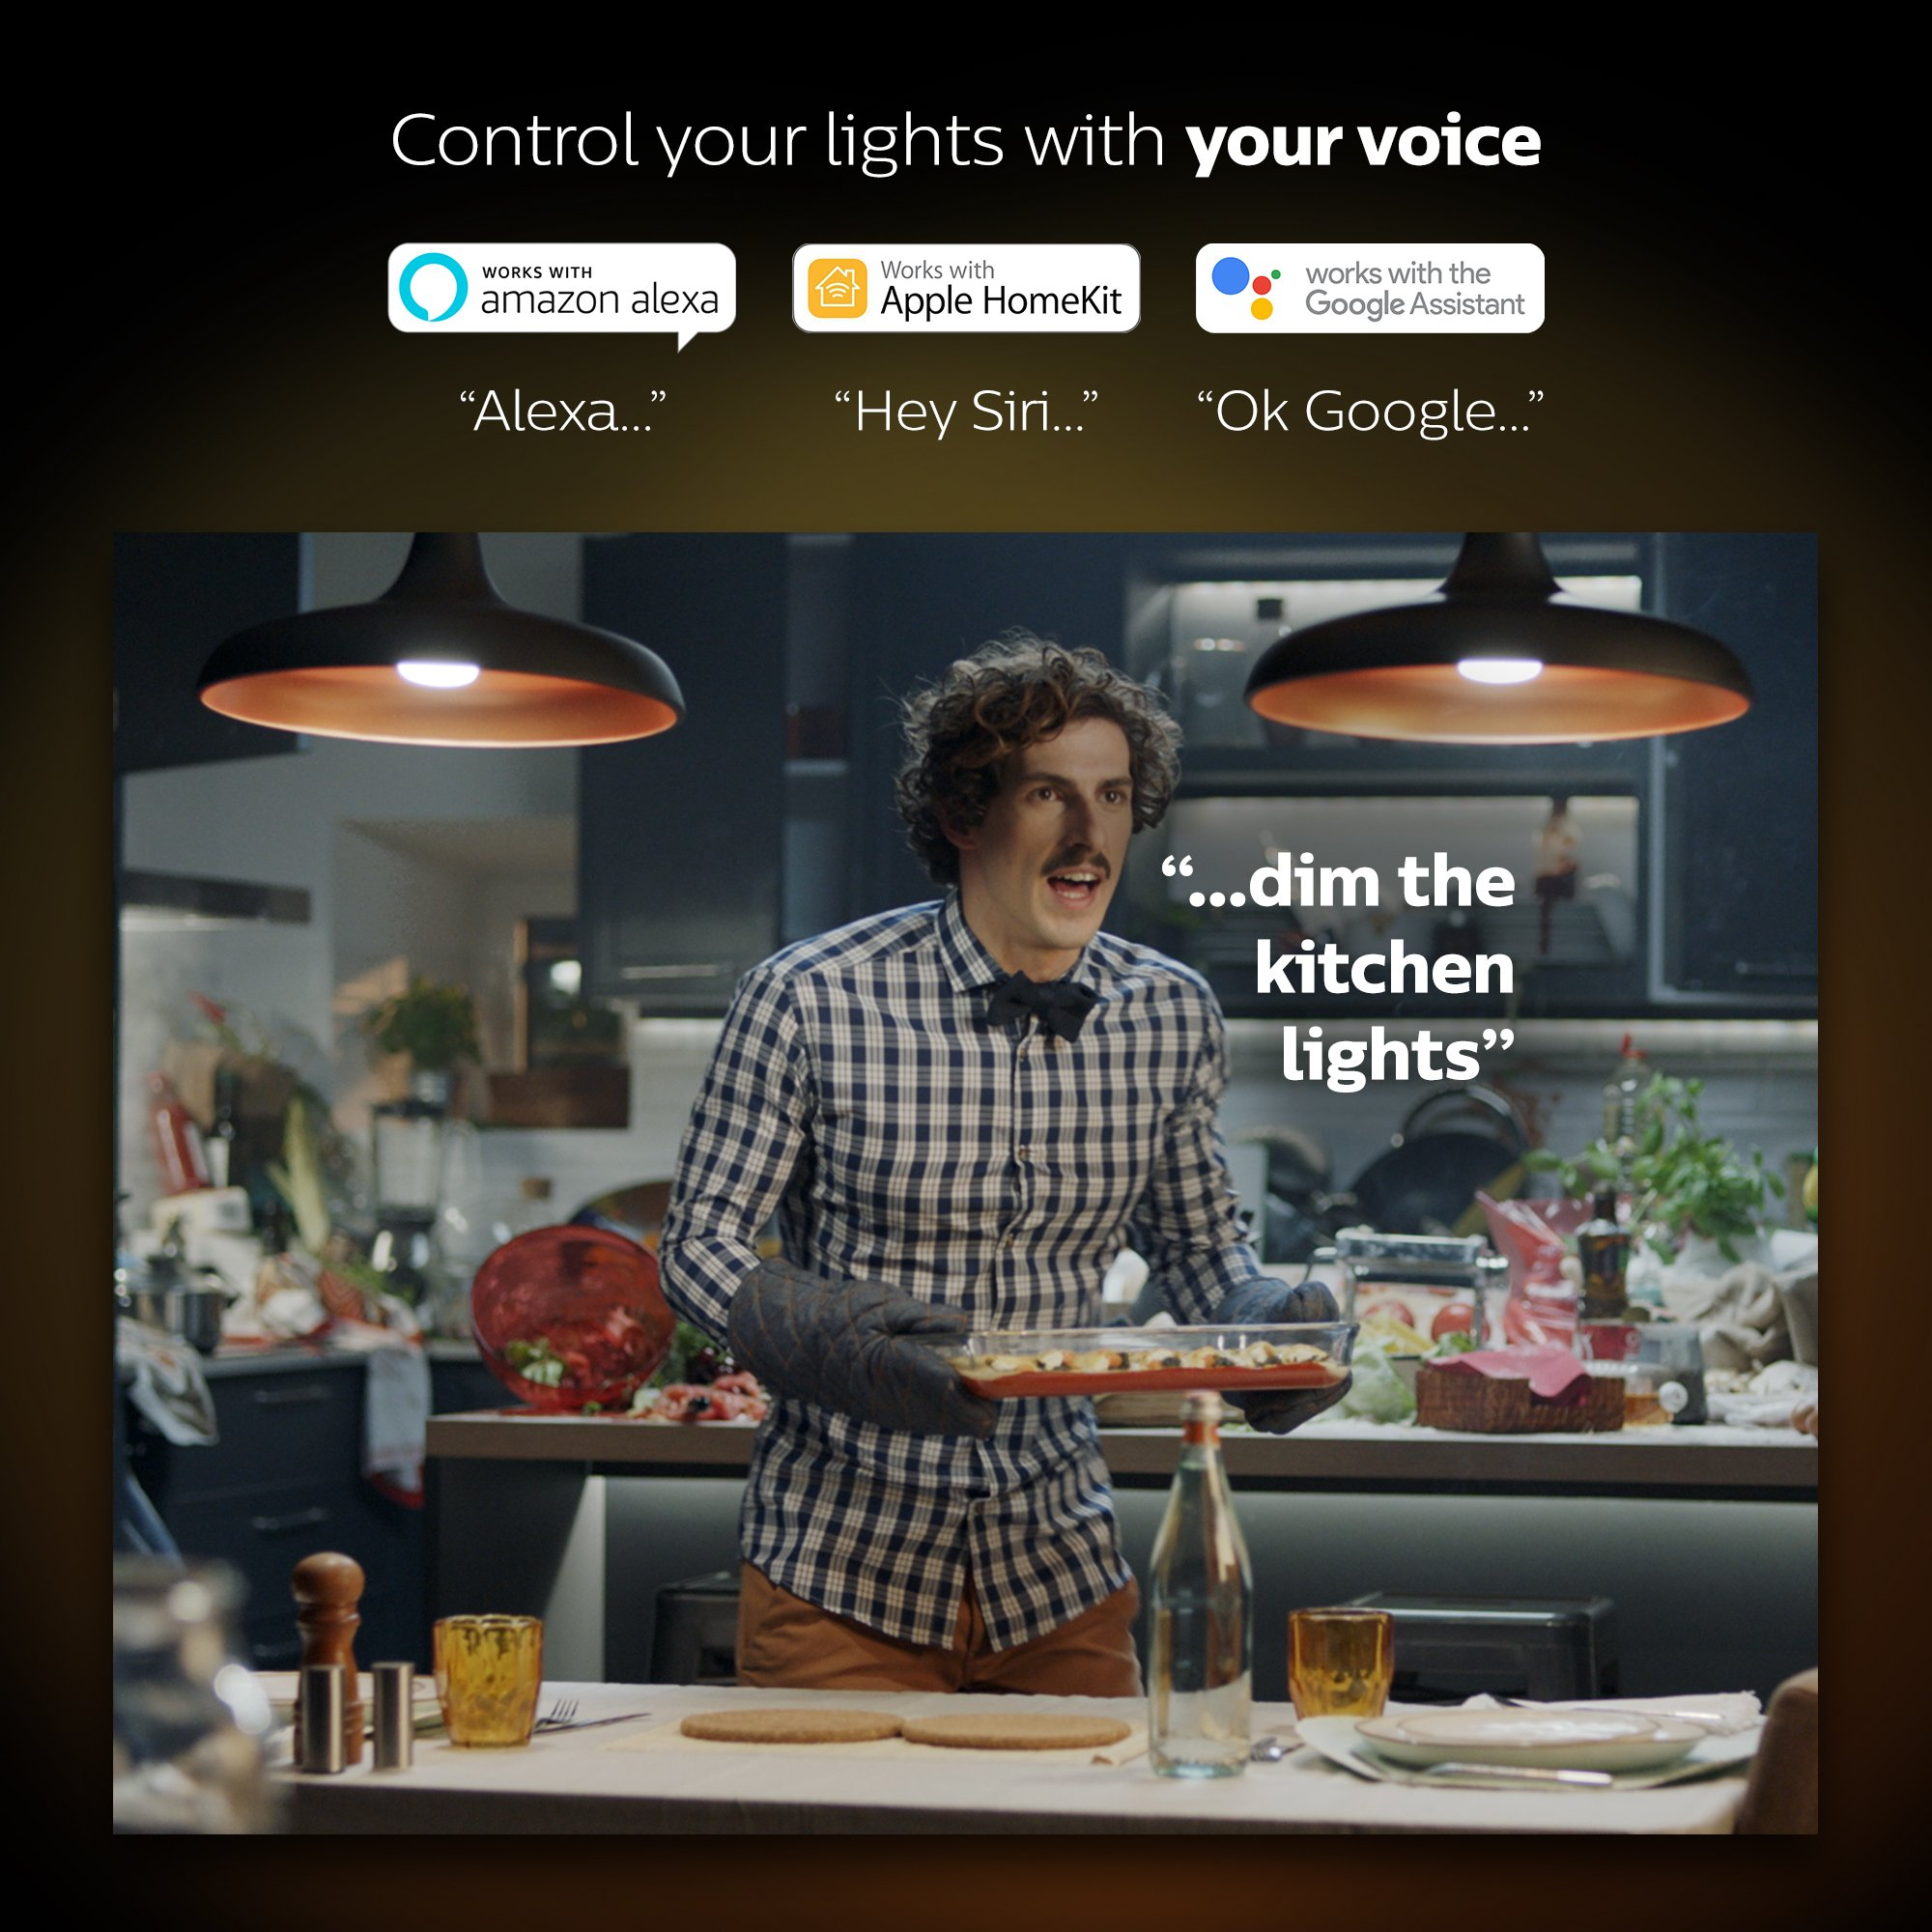 Philips Hue 2-Pack White Ambiance 60W Equivalent Dimmable LED Smart Bulb (Works with Alexa Apple Homekit and Google Assistant) by Philips Hue (Image #5)